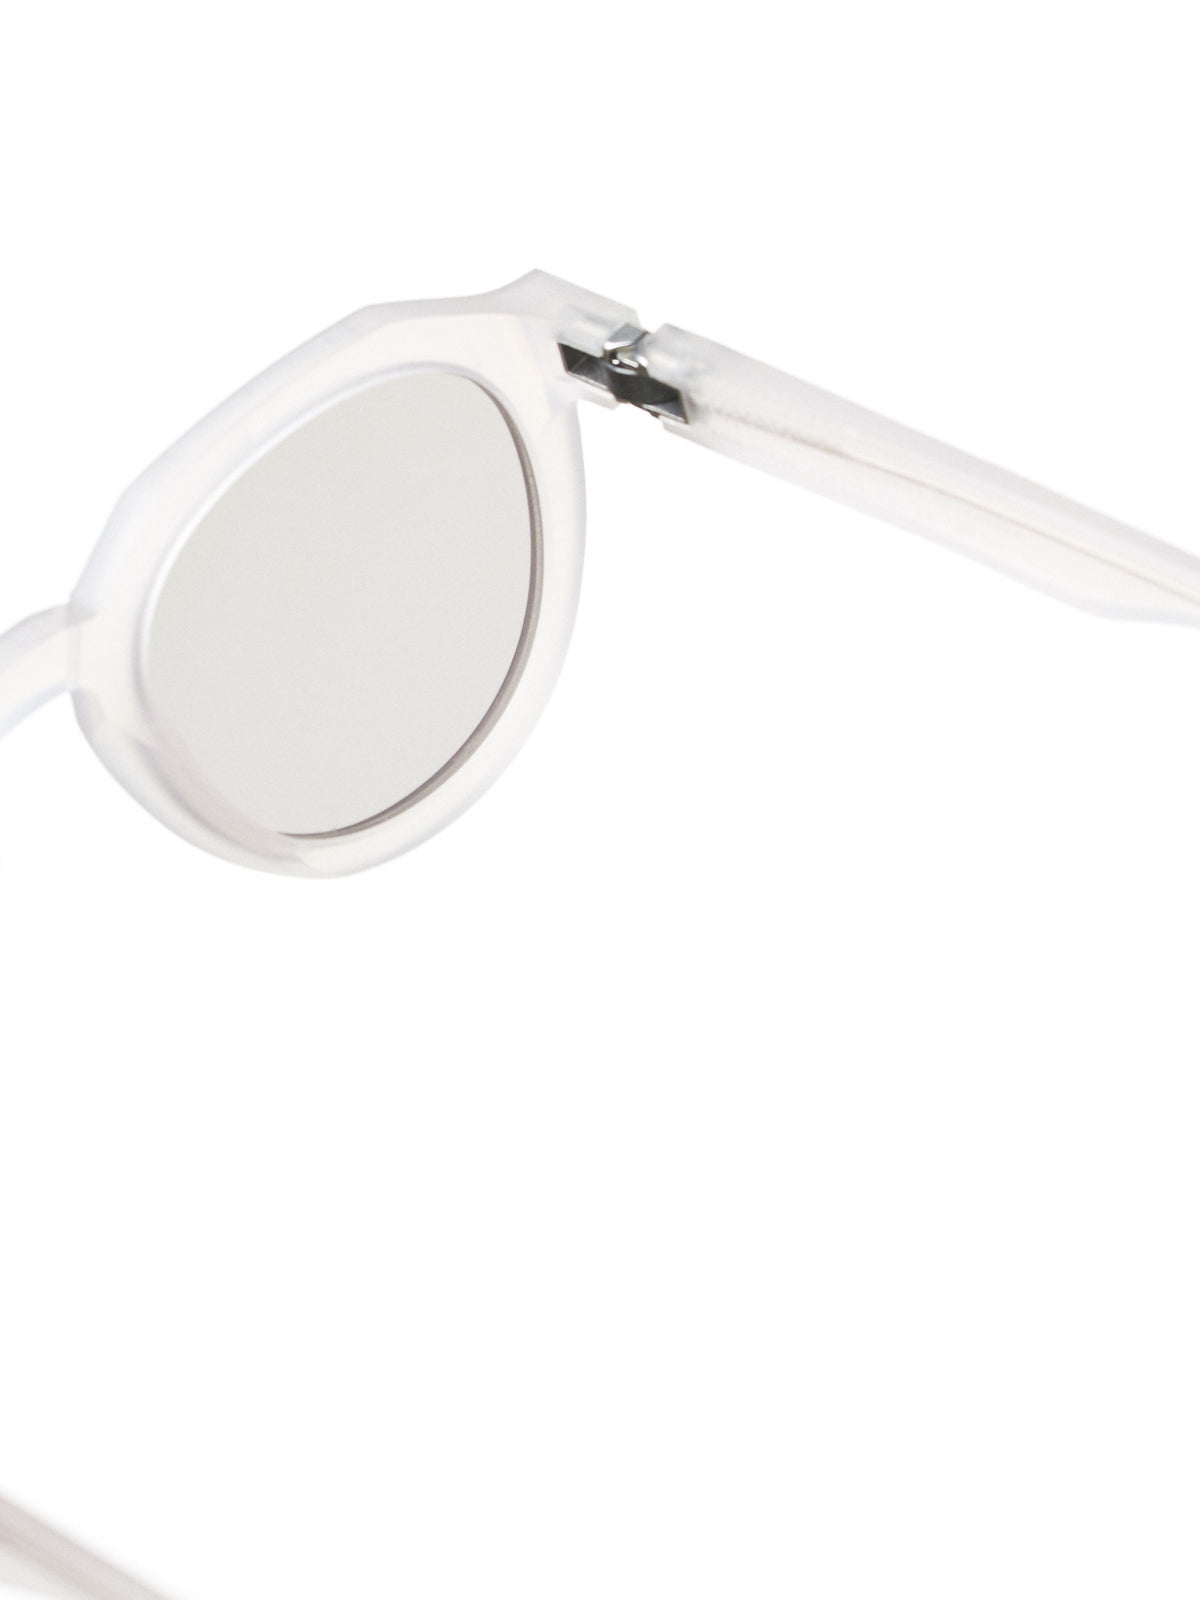 'MMRAW007' Elliptical Sunglasses (MMRAW007-CCNT-WTR-WRM-GRY)